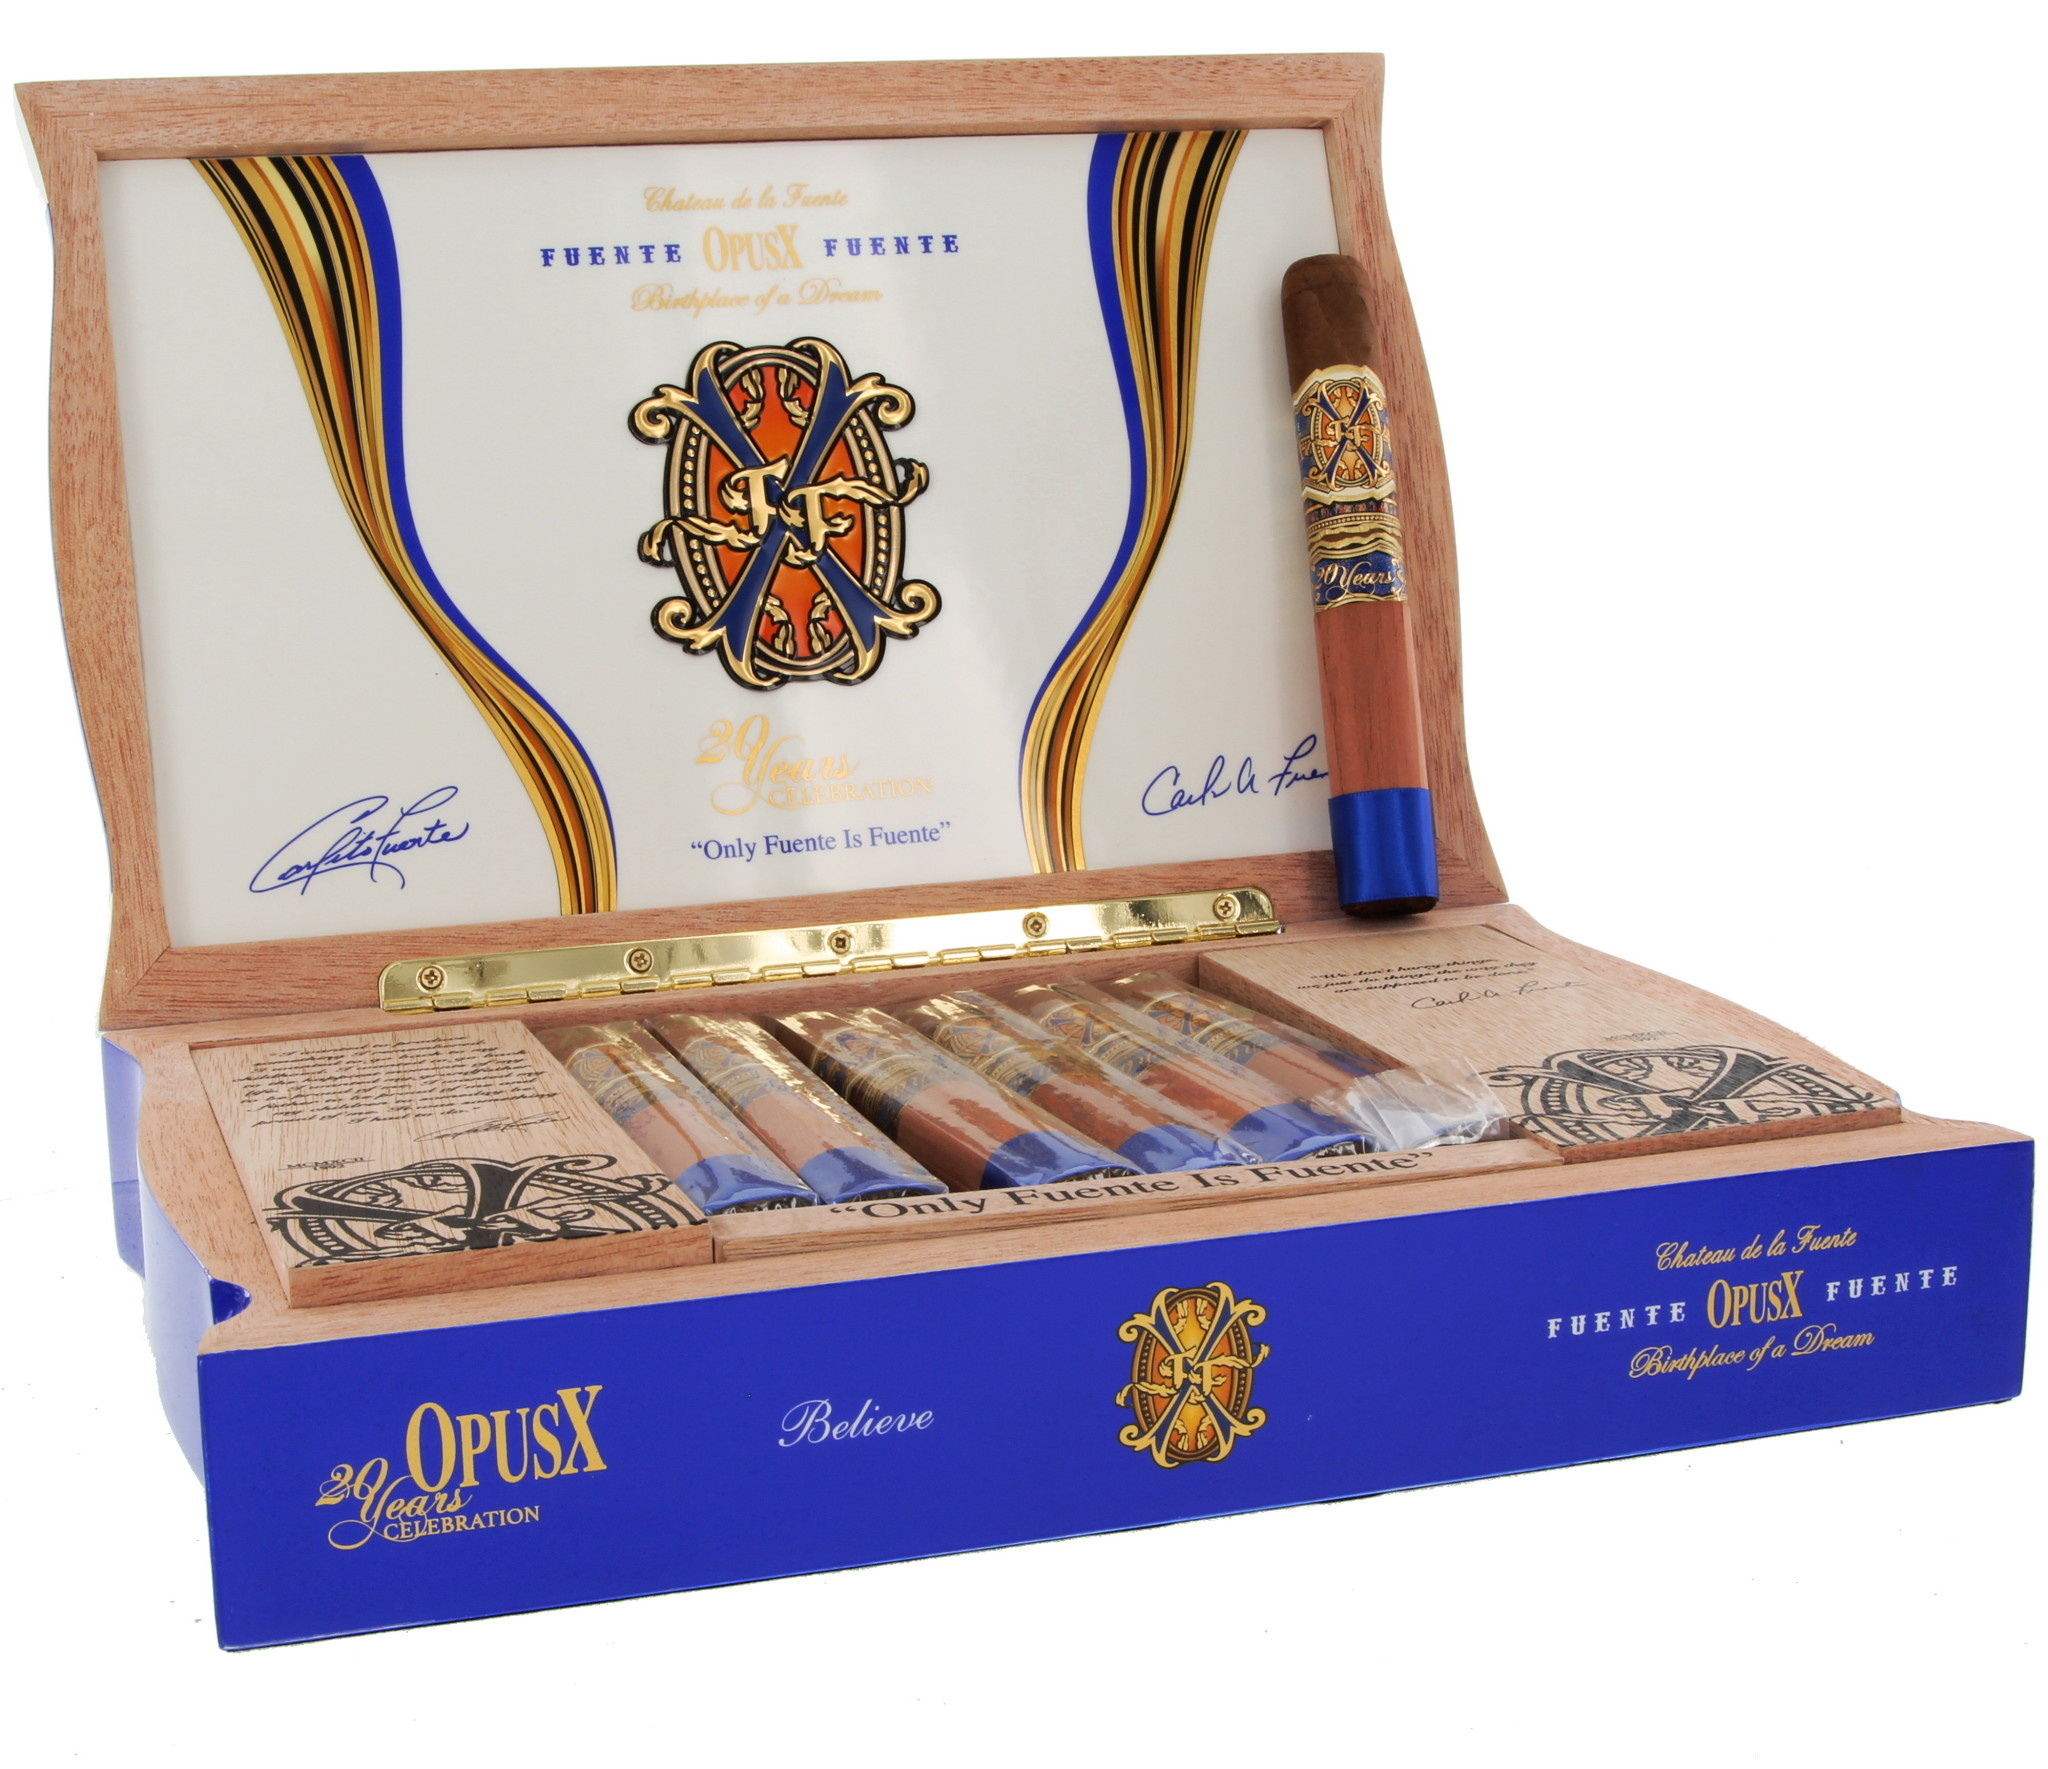 Arturo Fuente ARTURO FUENTE OPUS X 20TH POWER OF THE DREAM 20ct. BOX